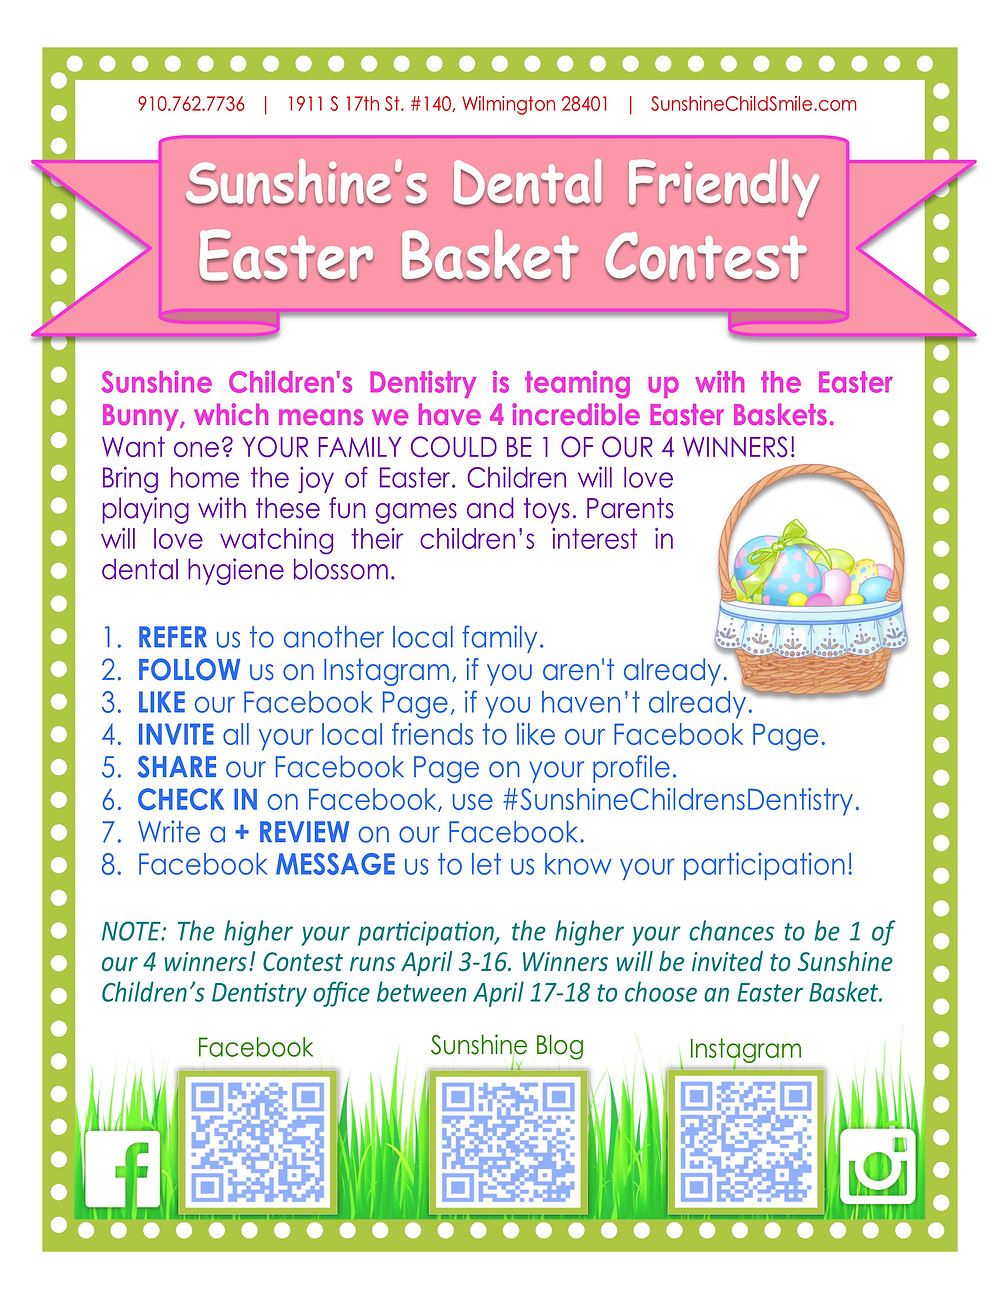 Sunshine's Easter Basket information